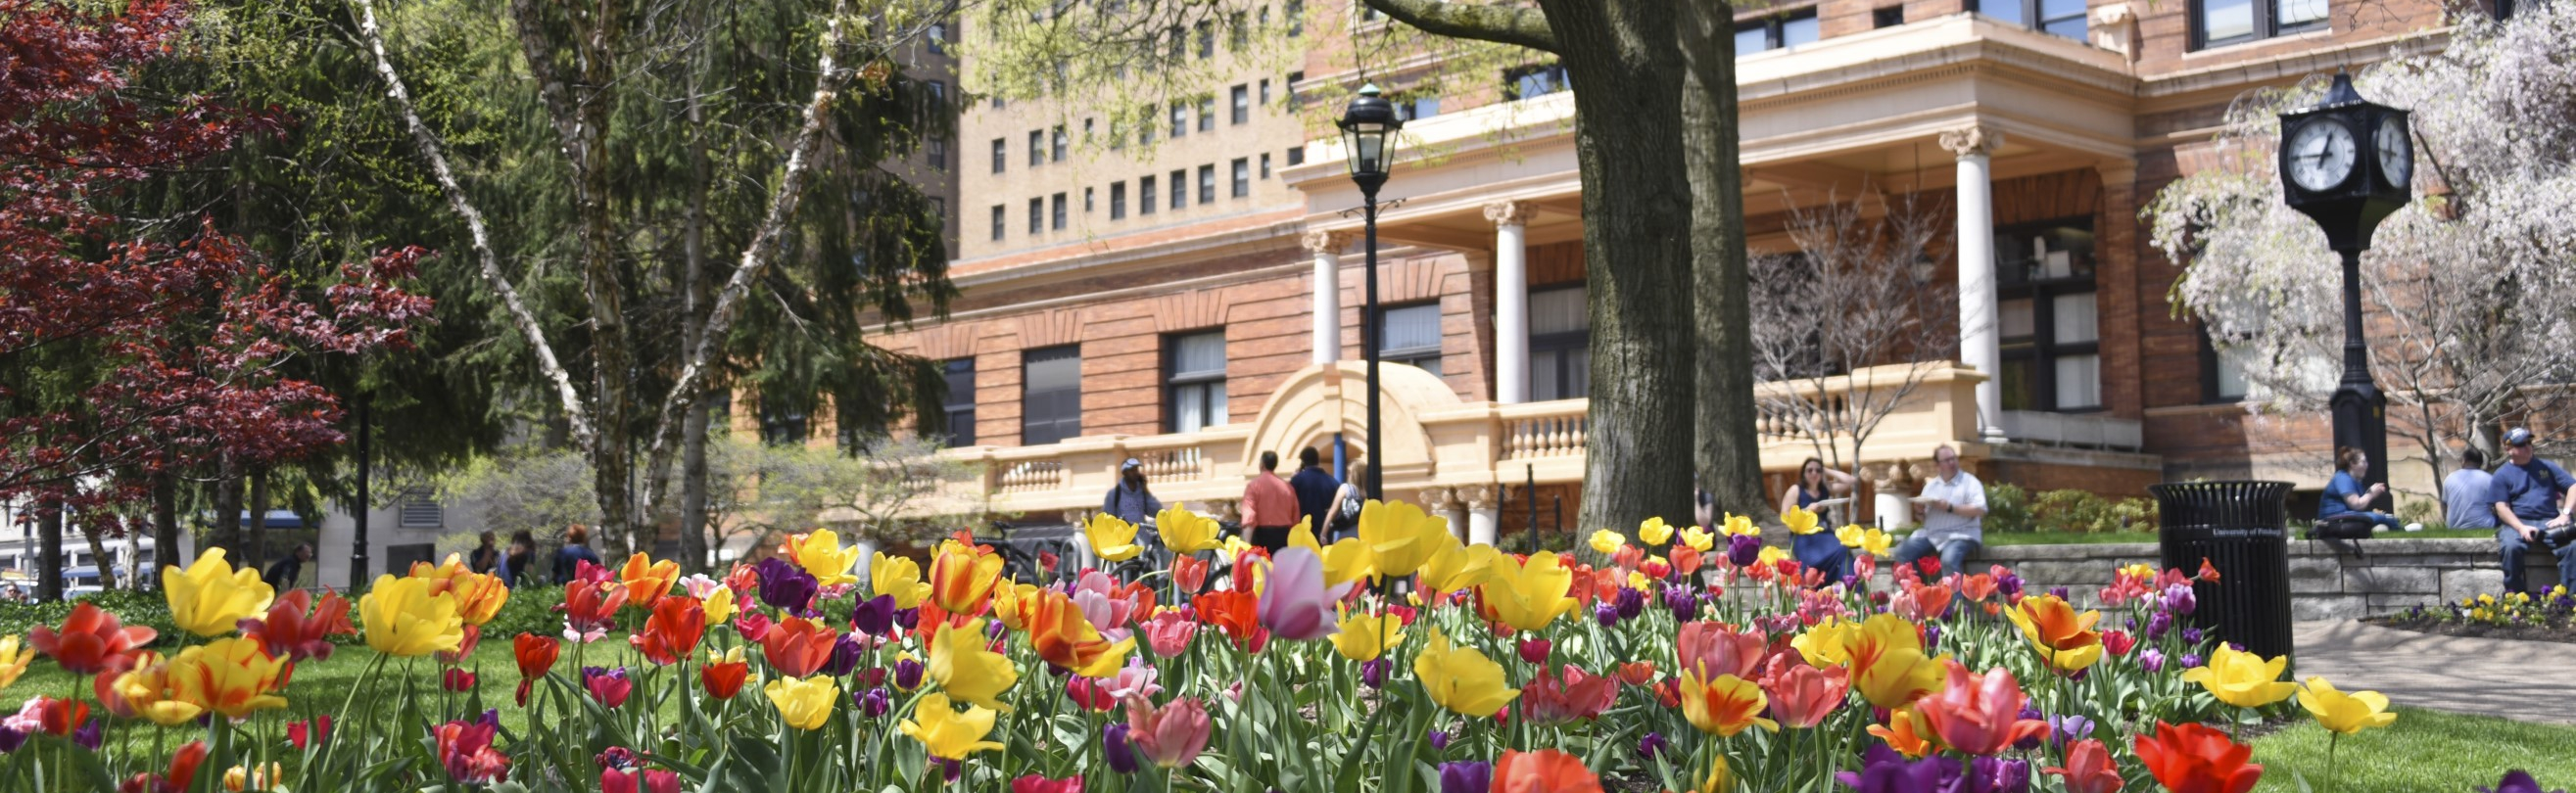 William Pitt Union with colorful spring tulips in foreground